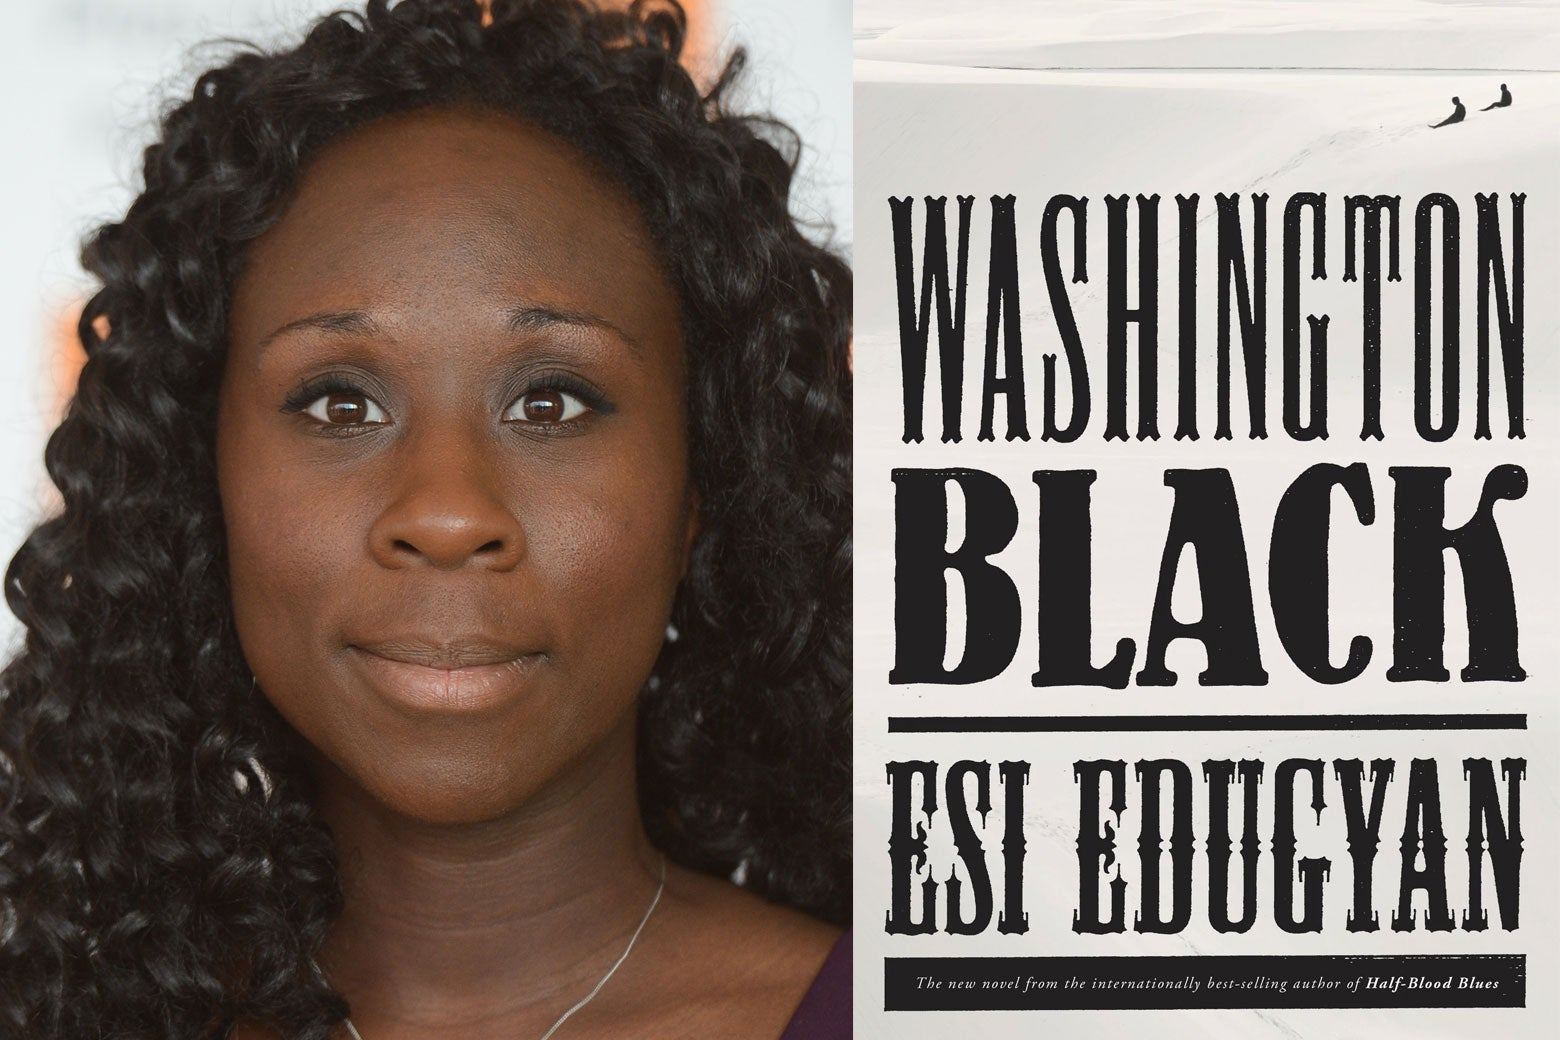 Esi Edugyan and the cover of her new book, Washington Black.